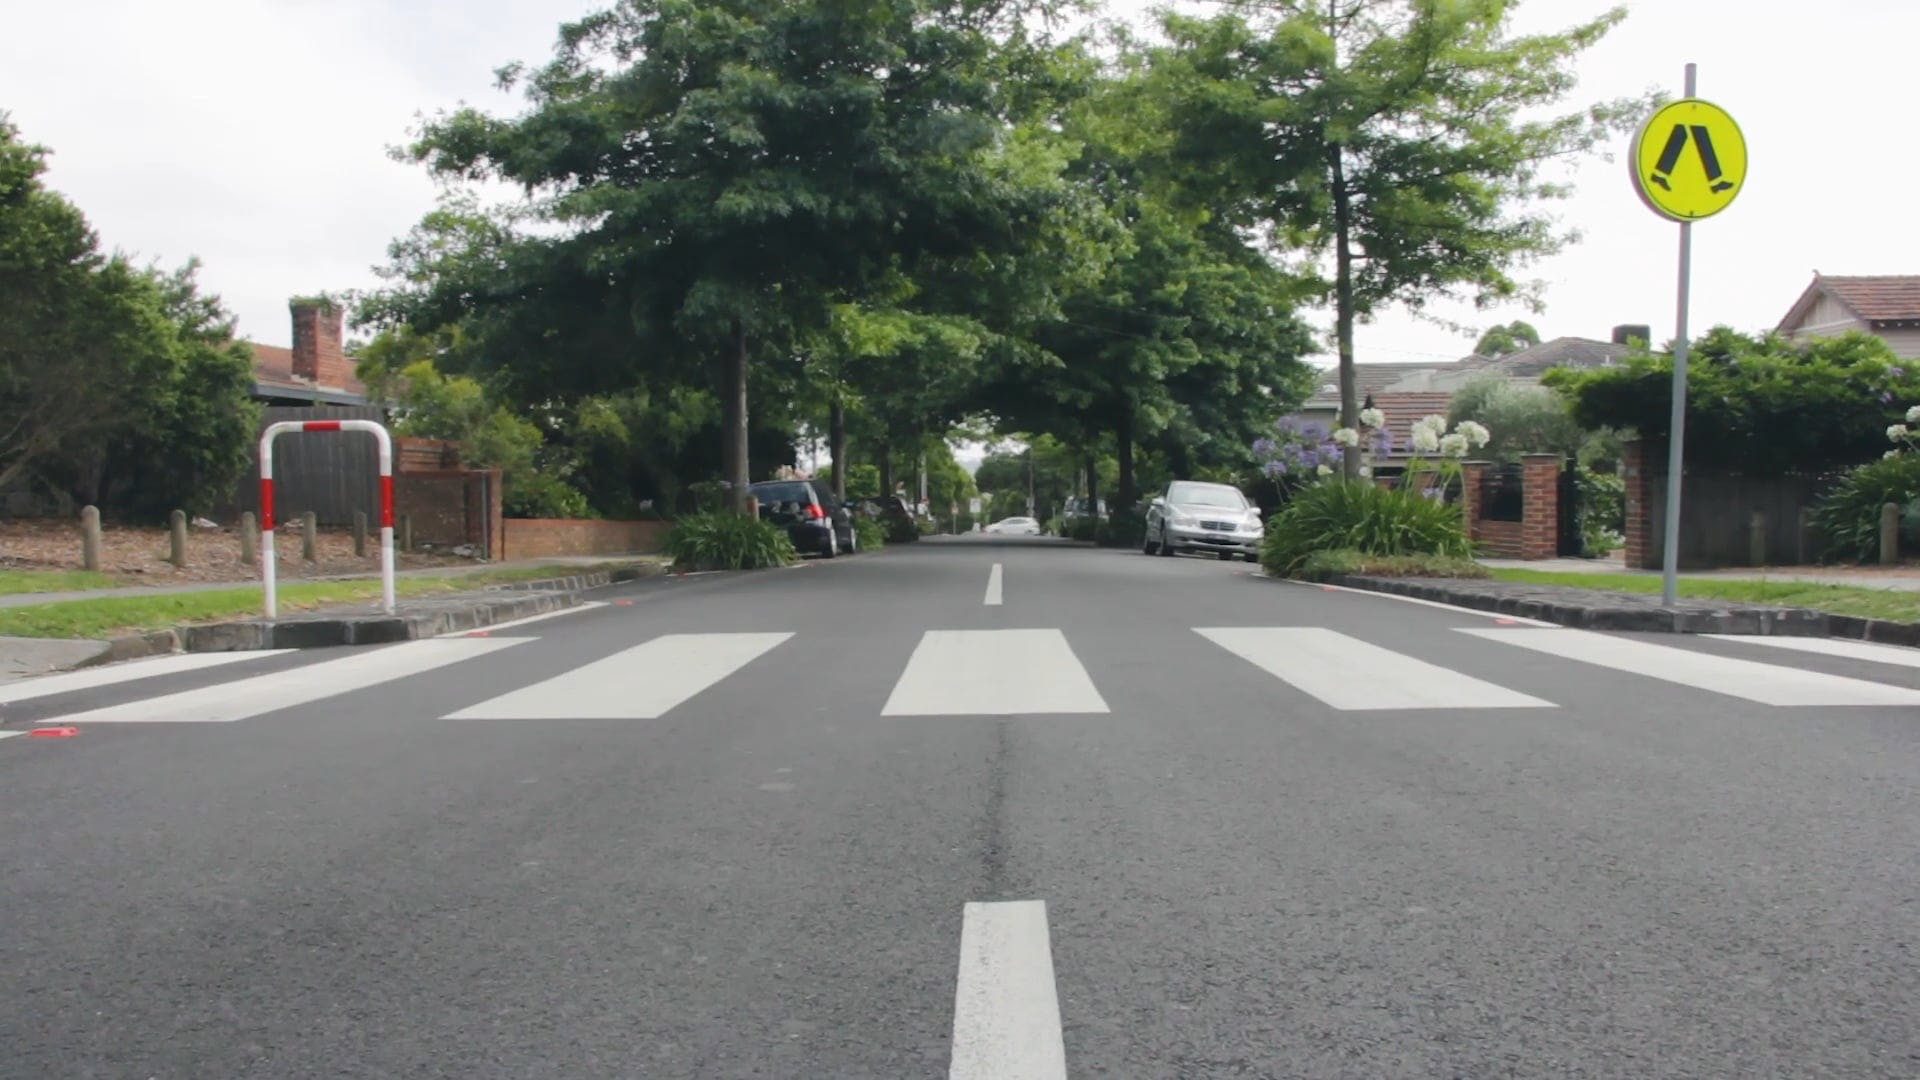 Video of Roadway During Daytime